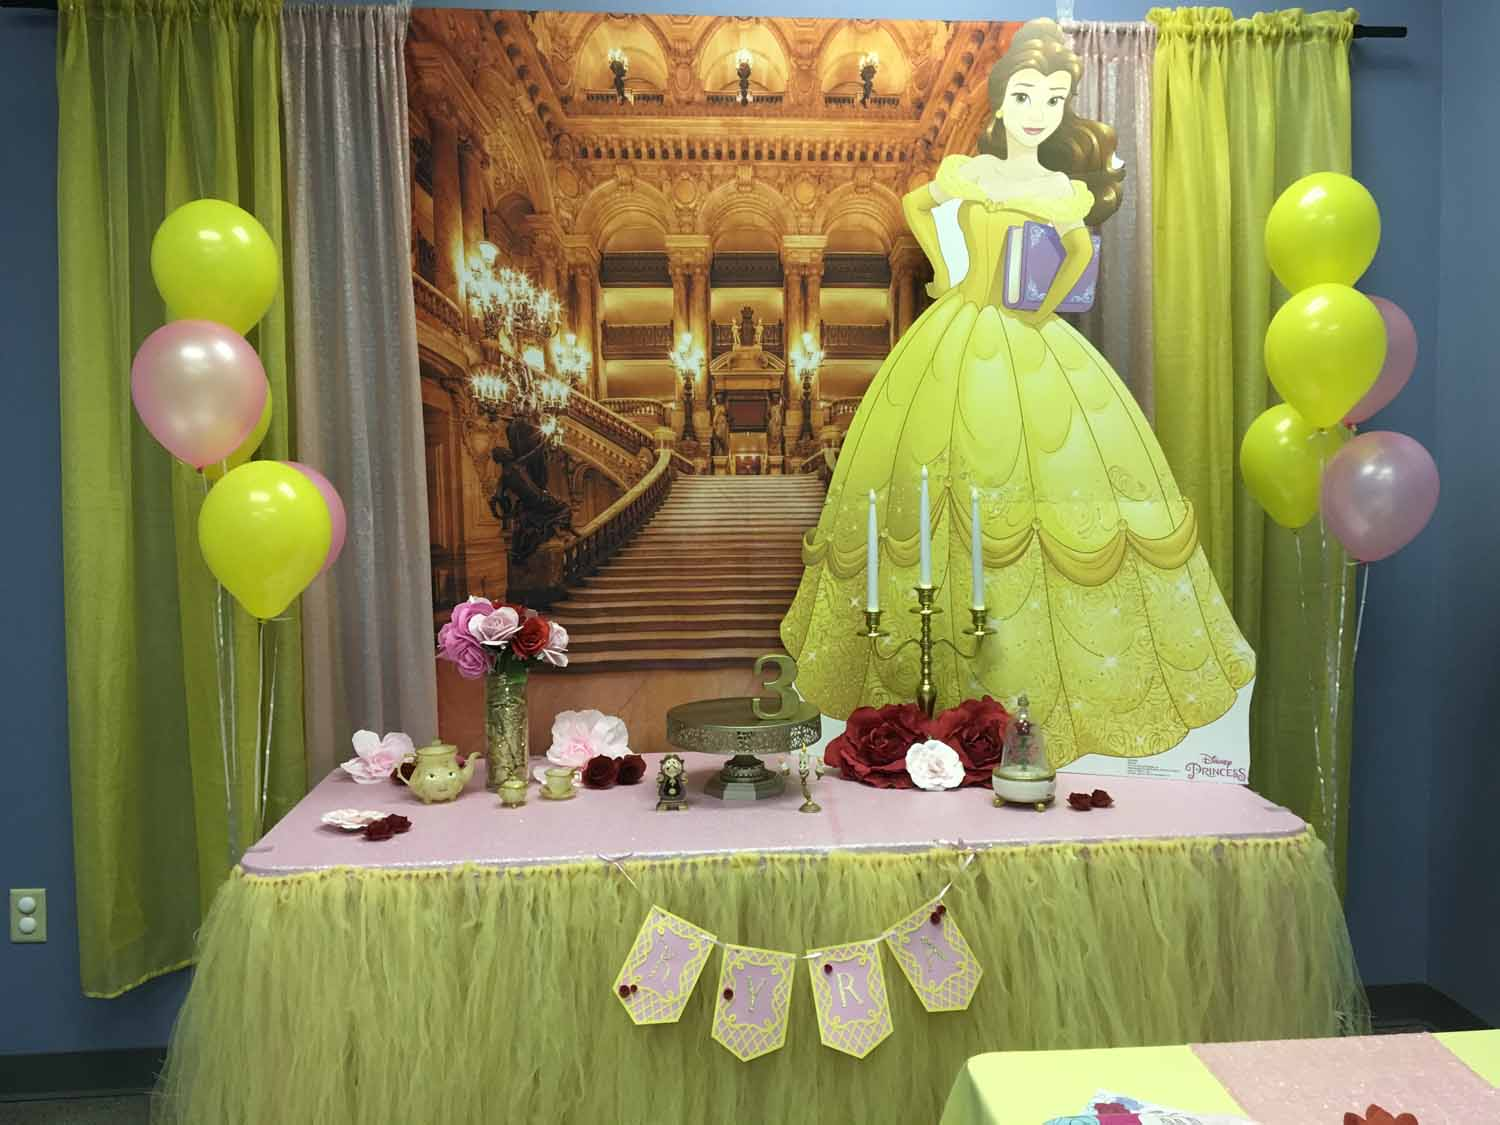 3 year old birthday party orlando fl - beauty and the beast themed birthday party